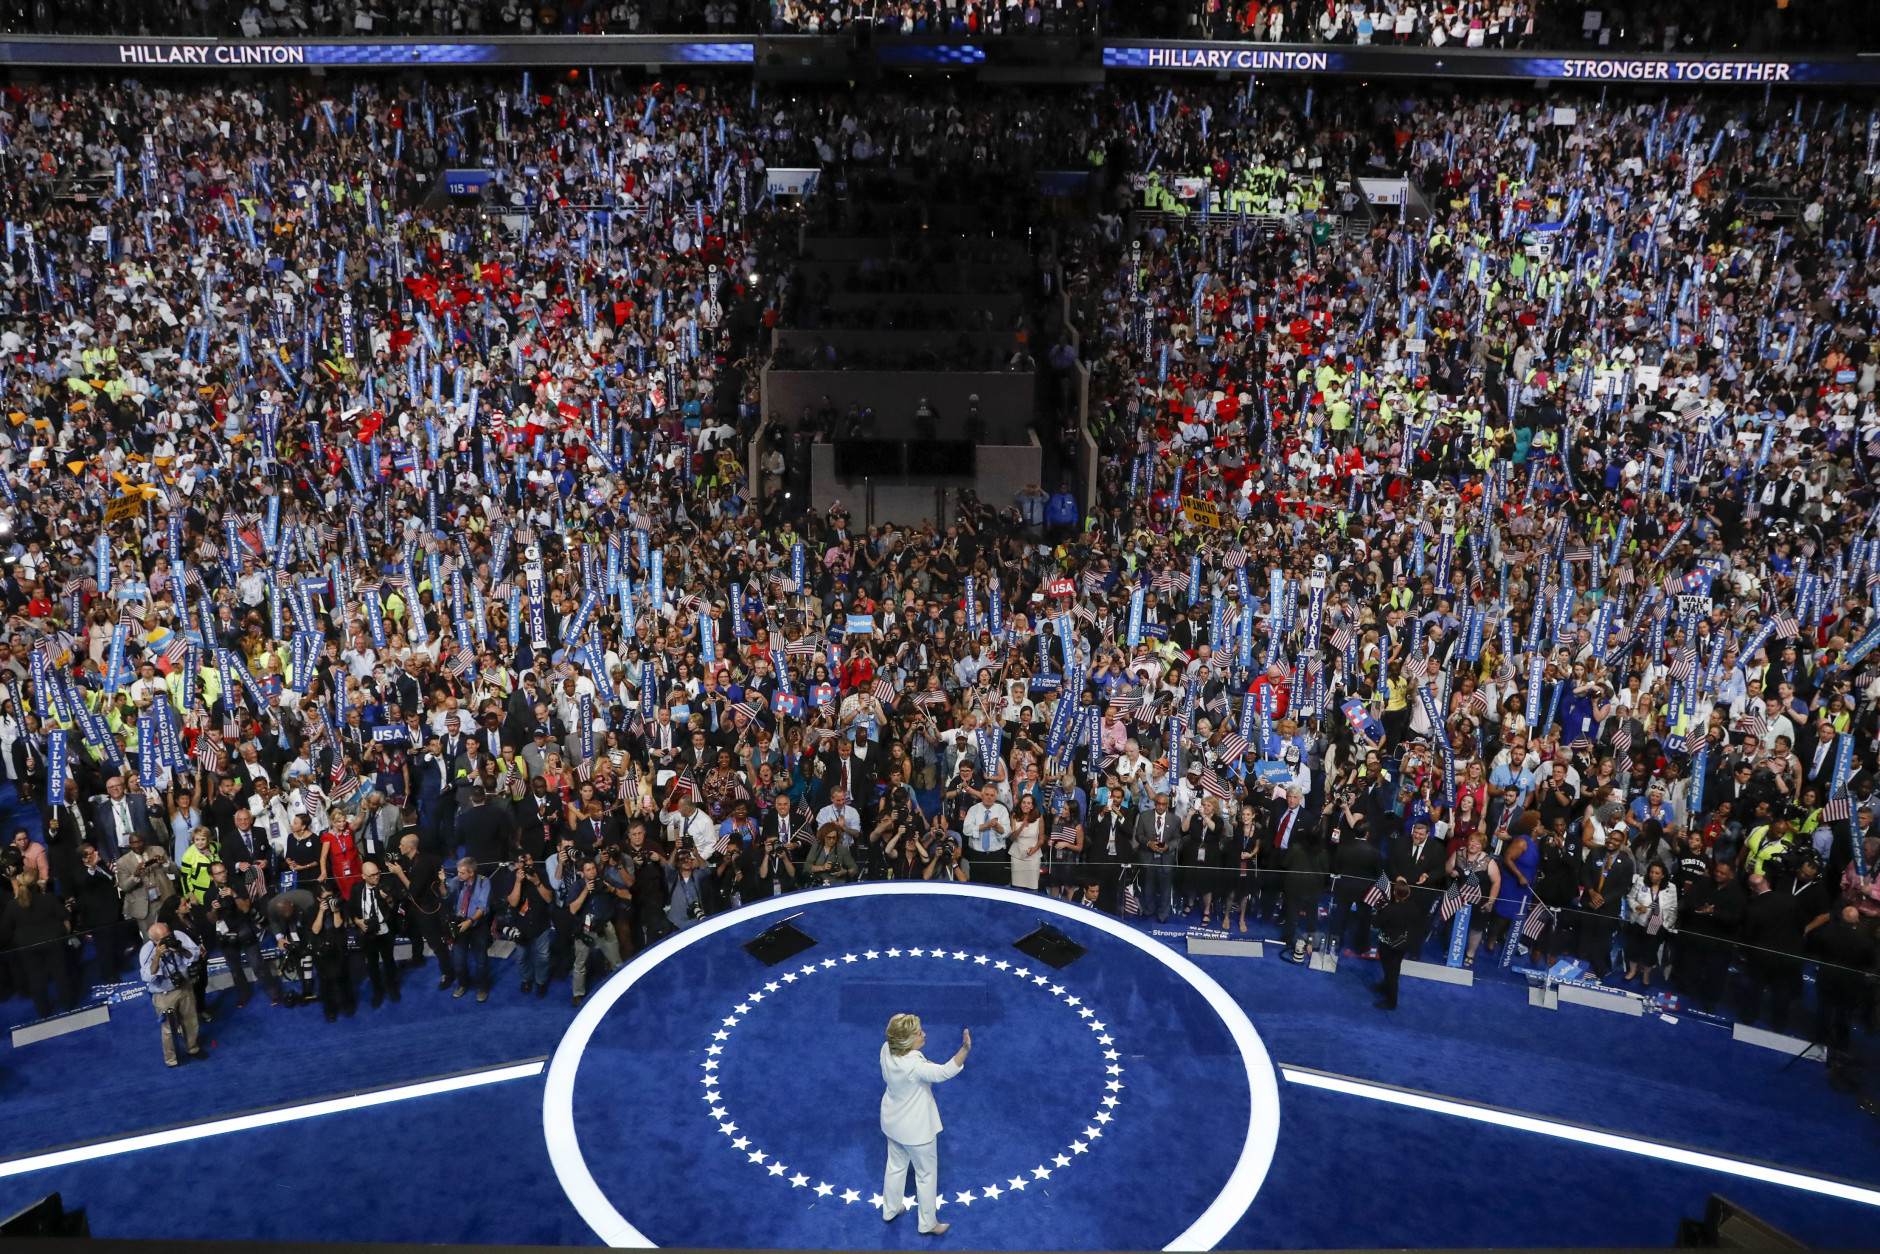 Democratic presidential nominee Hillary Clinton waves to delegates after her speech during the final day of the Democratic National Convention in Philadelphia, Thursday, July 28, 2016. (AP Photo/Mary Altaffer)